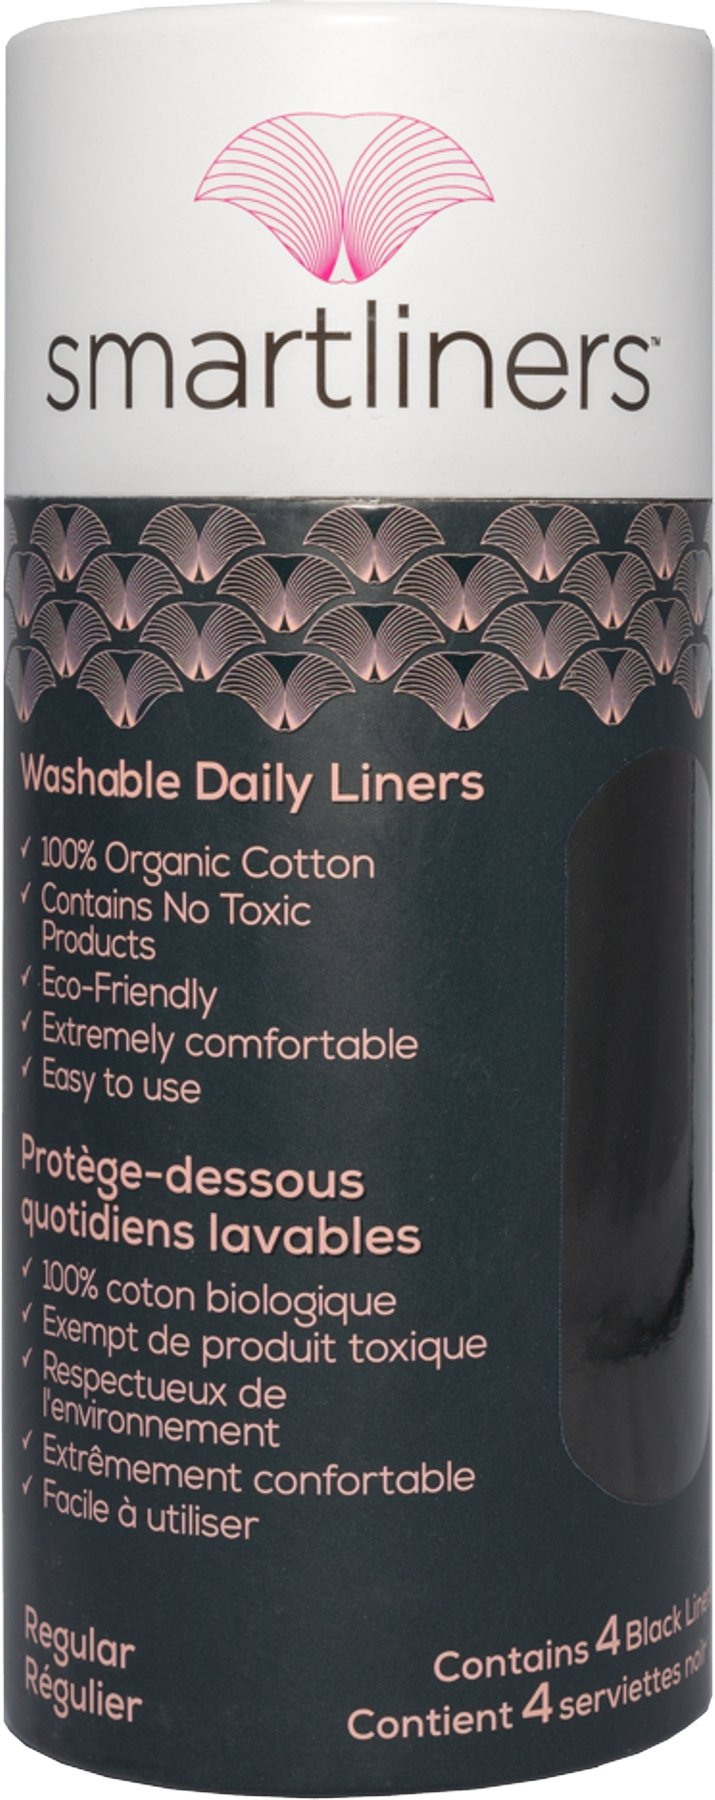 Smartliners™ 100% Organic Cotton Reusable Daily liners - Black